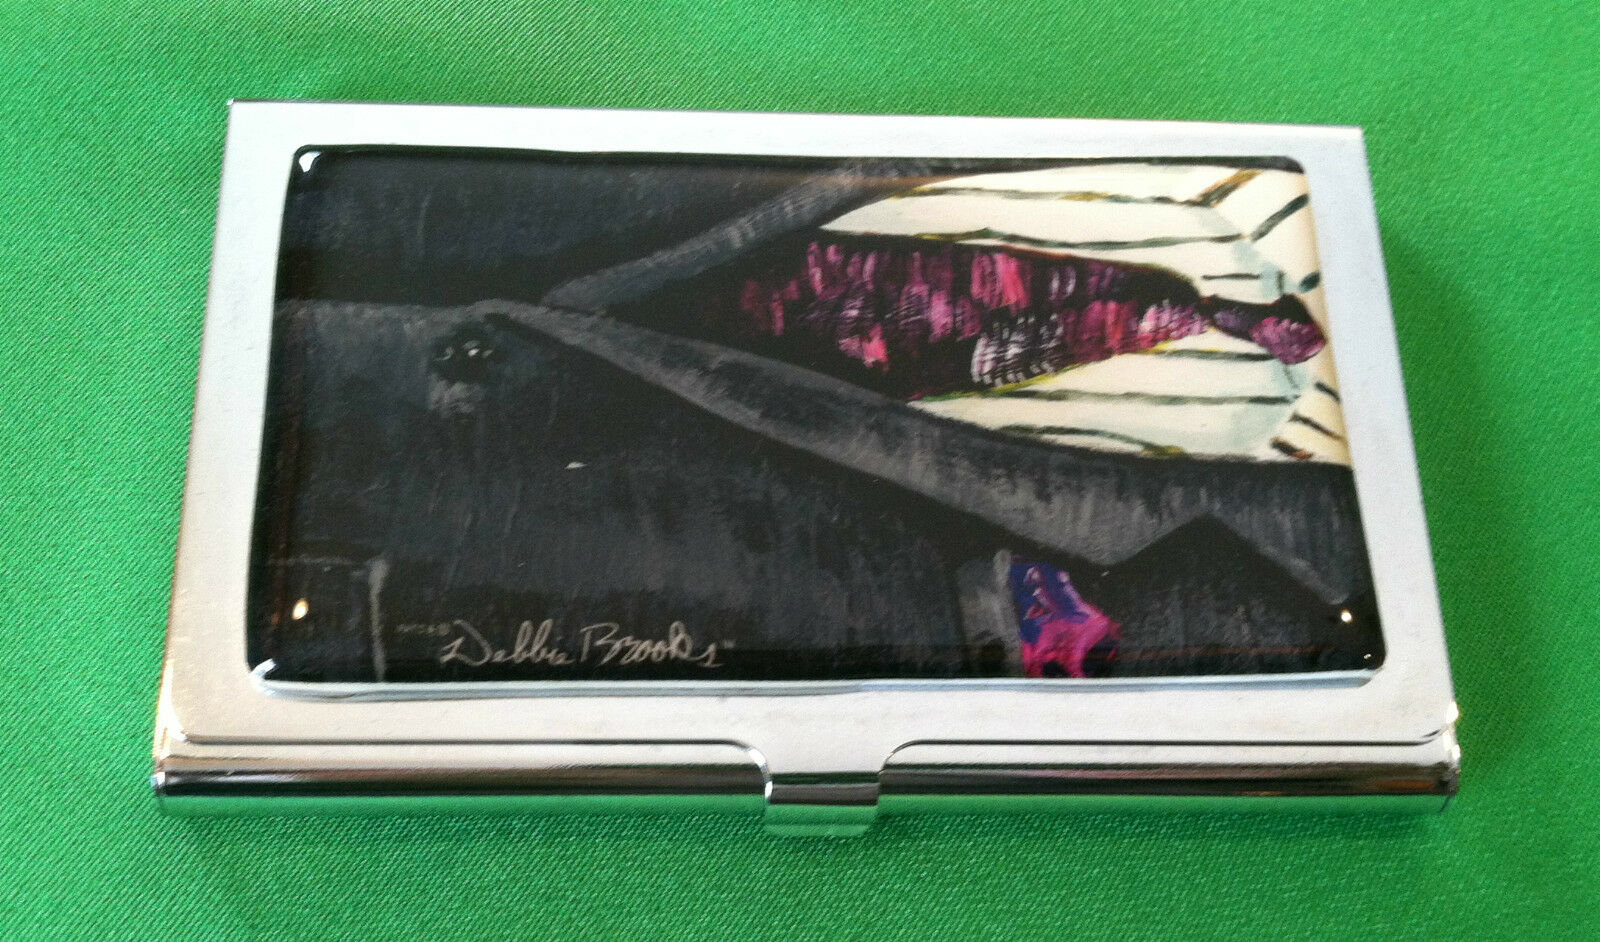 Debbie Brooks Suit and Tie Business or Credit Card Holder Art NEW